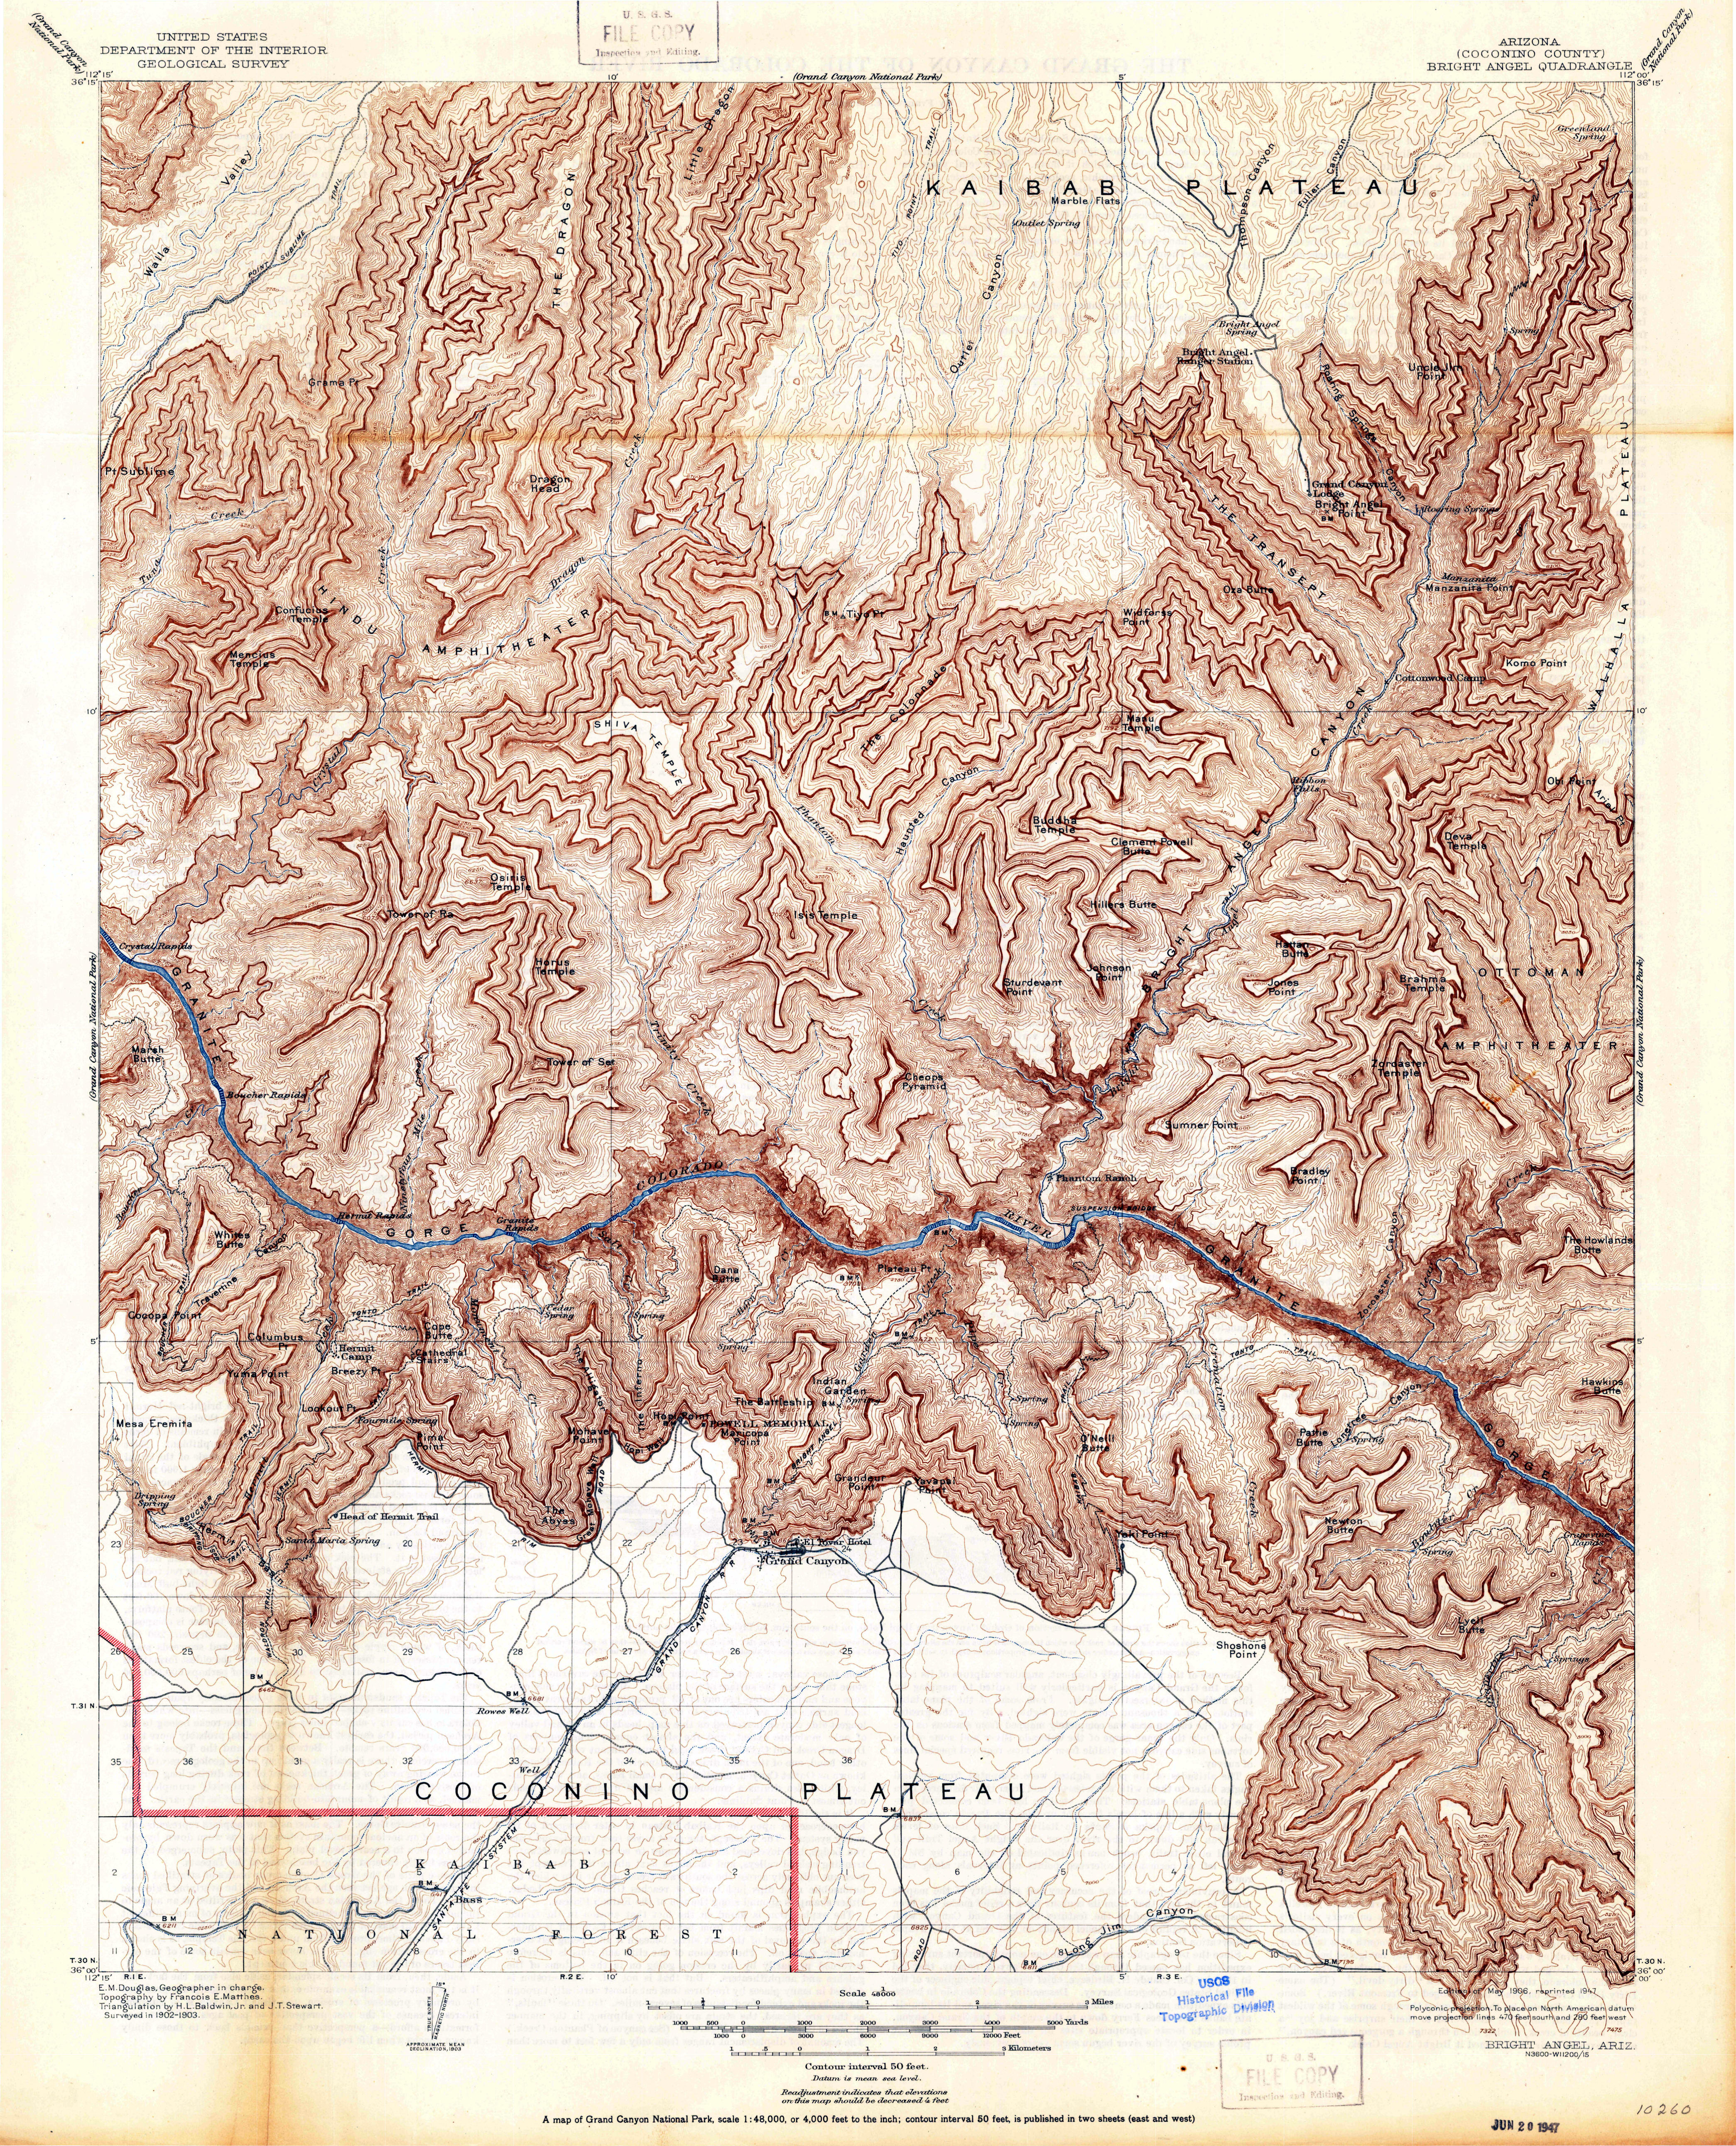 Topographic Map Grand Canyon.Grand Canyon Maps Npmaps Com Just Free Maps Period